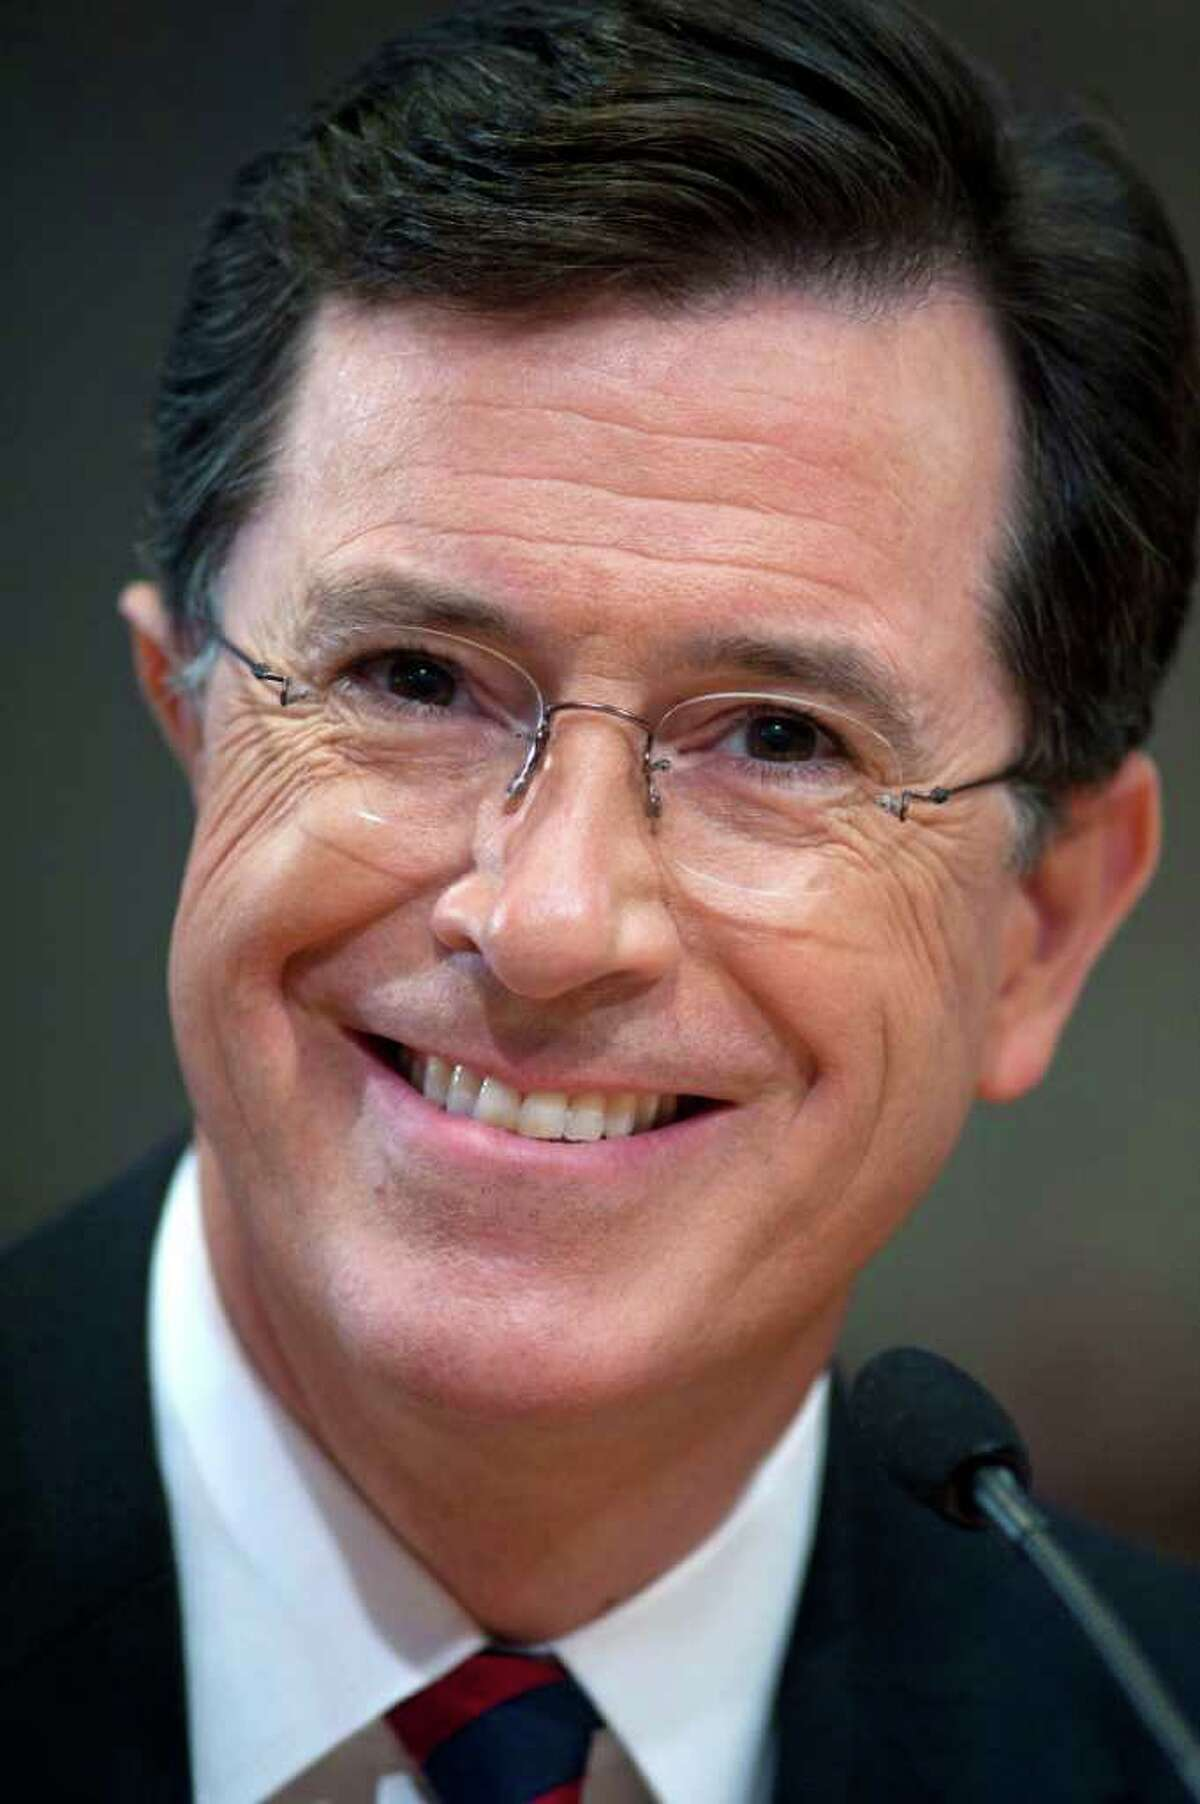 """FILE- This Thursday, June 30, 2011 file photo shows comedian Stephen Colbert as he appears before the Federal Election Commission in Washington. Colbert's ?""""super?"""" PAC has raised a staggering $1 million. Political action committees were required to submit their financial reports to the Federal Election Commission on Tuesday. Colbert disclosed that as of Monday, his Americans for a Better Tomorrow PAC has raised $1,023,121.24. (AP Photo/Cliff Owen, File)"""